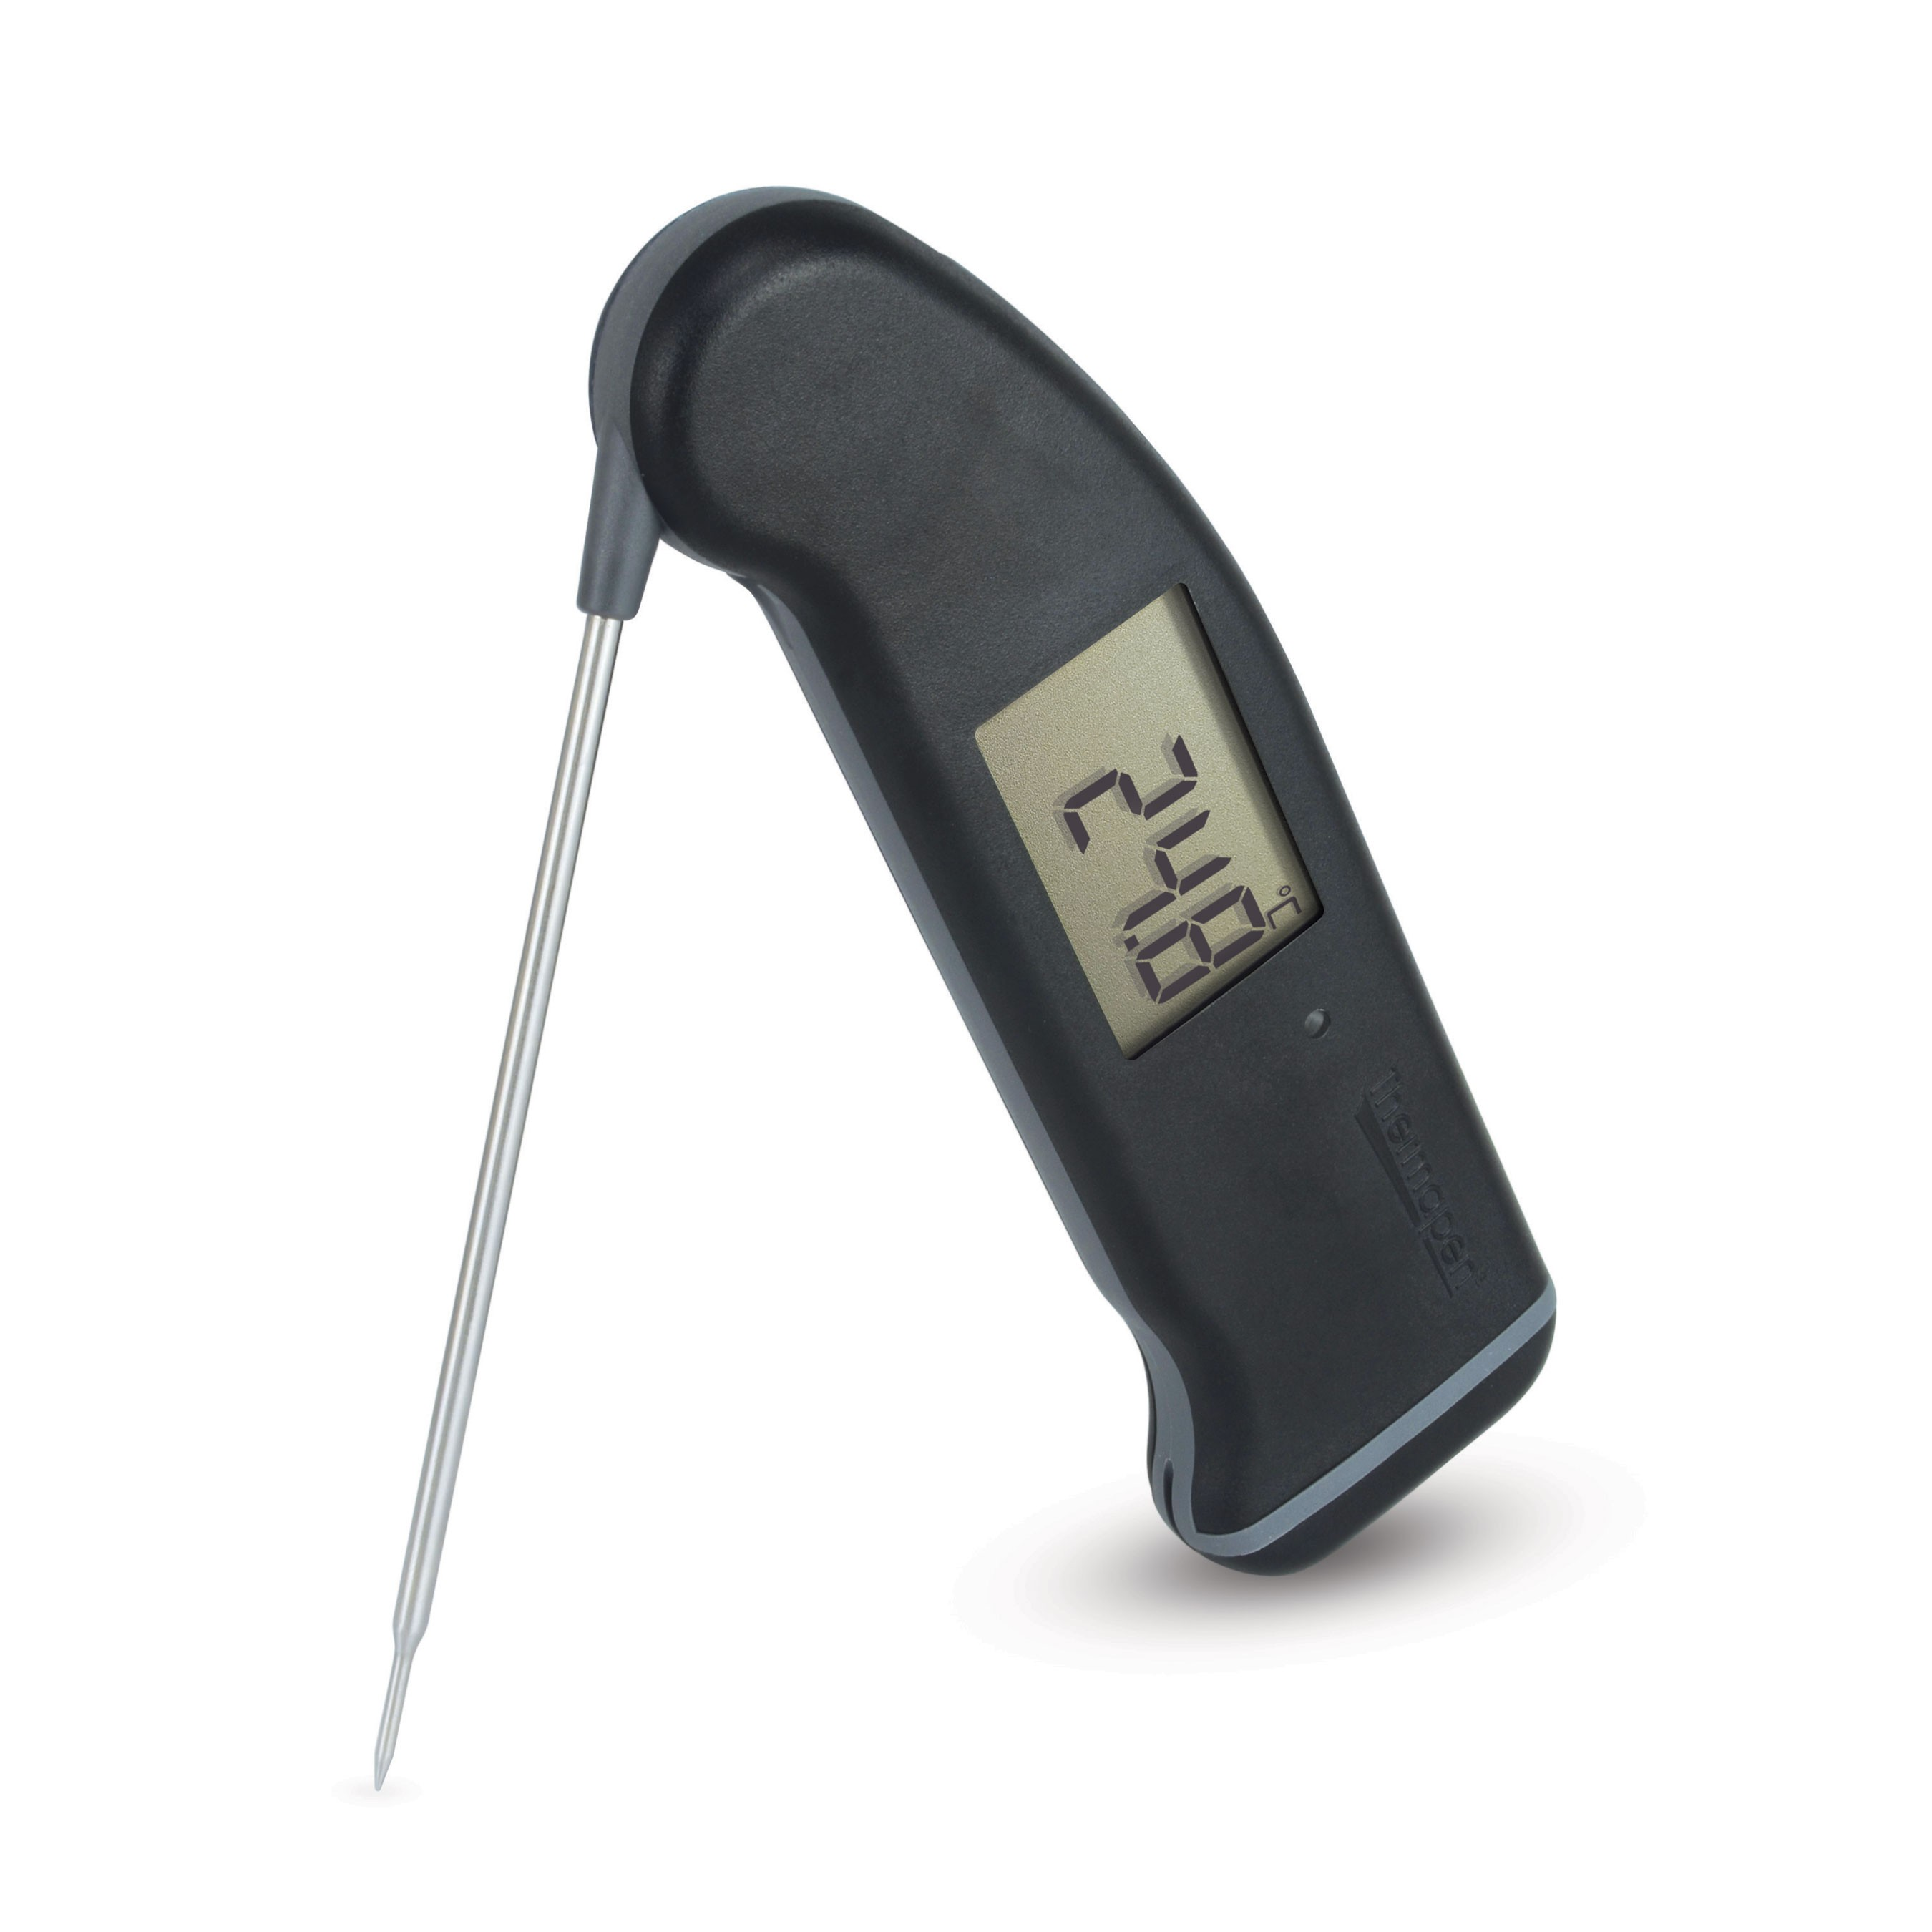 Grillthermometer SuperFast Thermapen 4 Digitalthermometer Bild 1